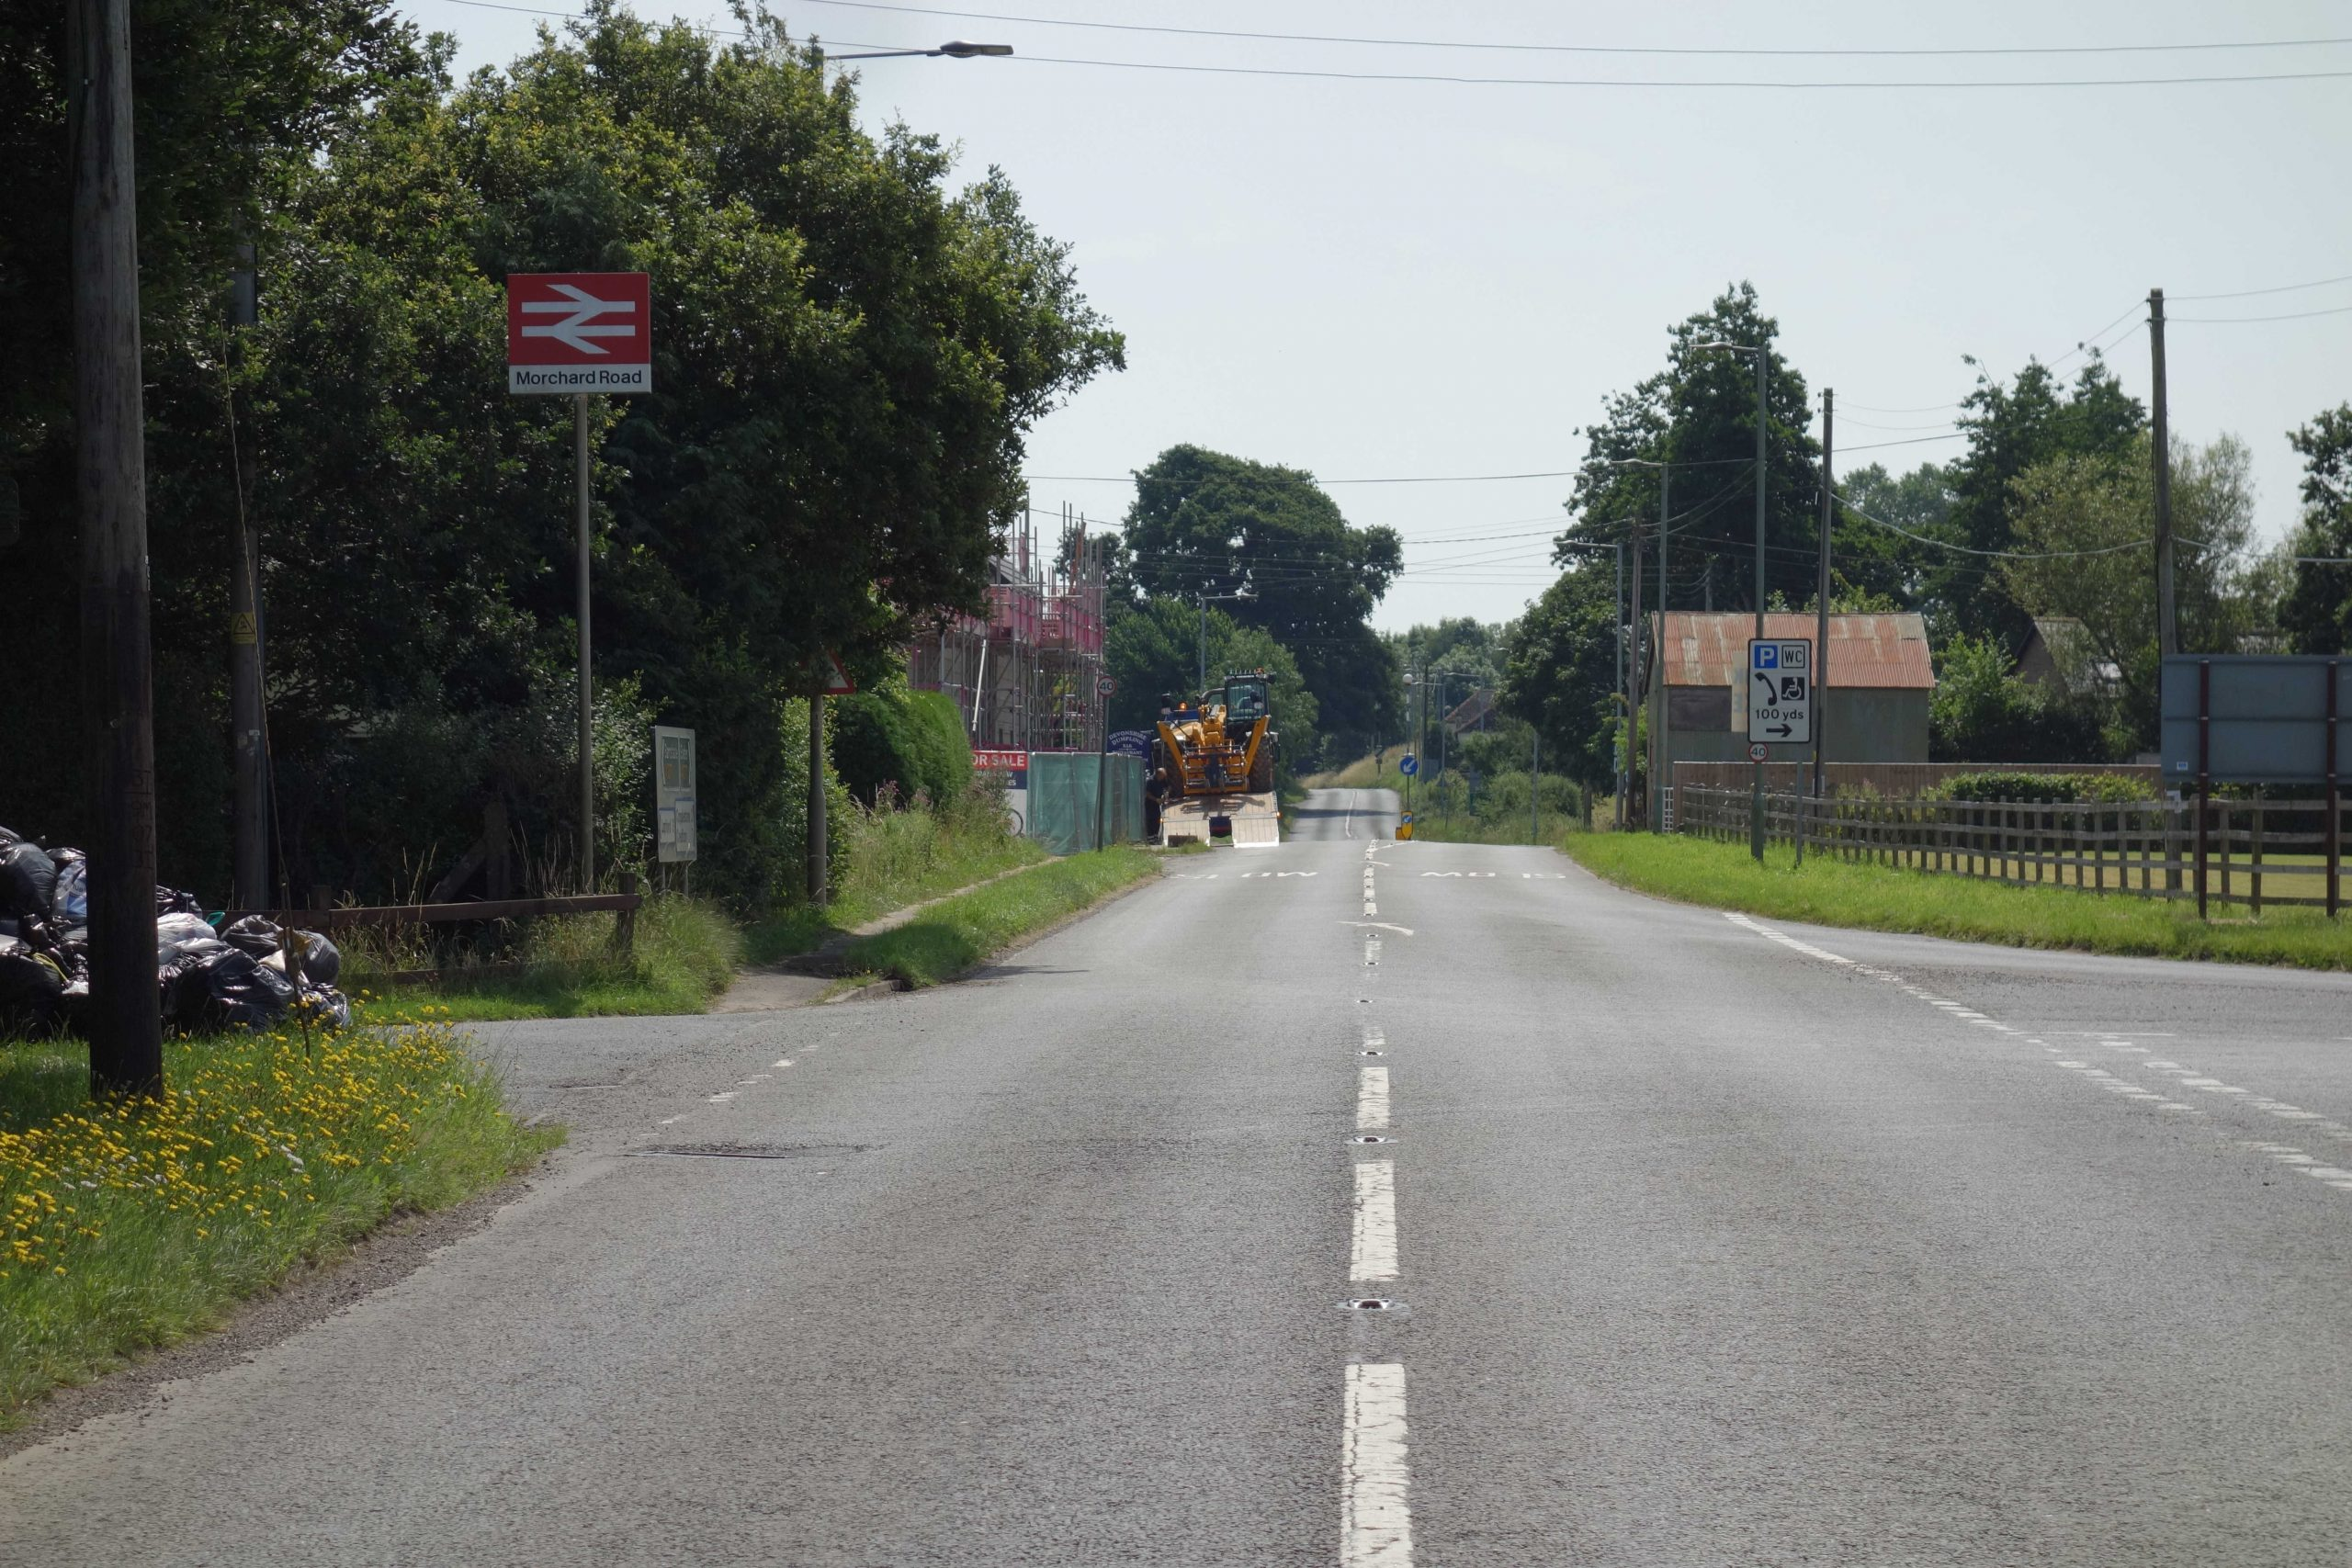 Exeter to Barnstaple turnpike at Morchard Road